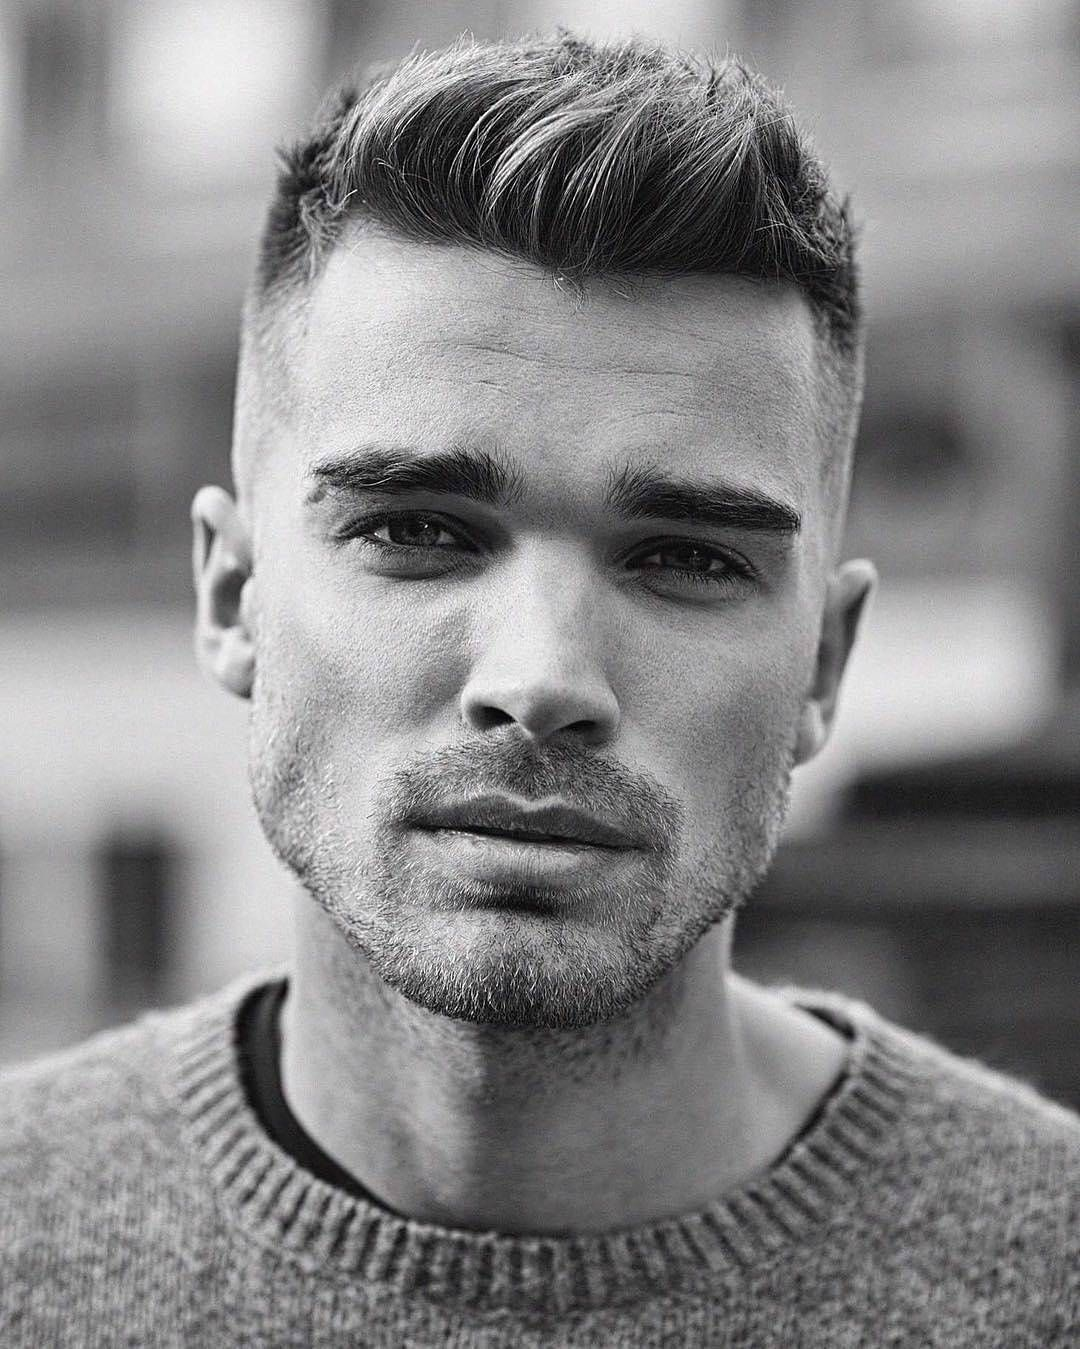 Popular Hairstyles For Men Unique Hi Guystoday We Will Talk About Cool Hairstyles For Men In 2017